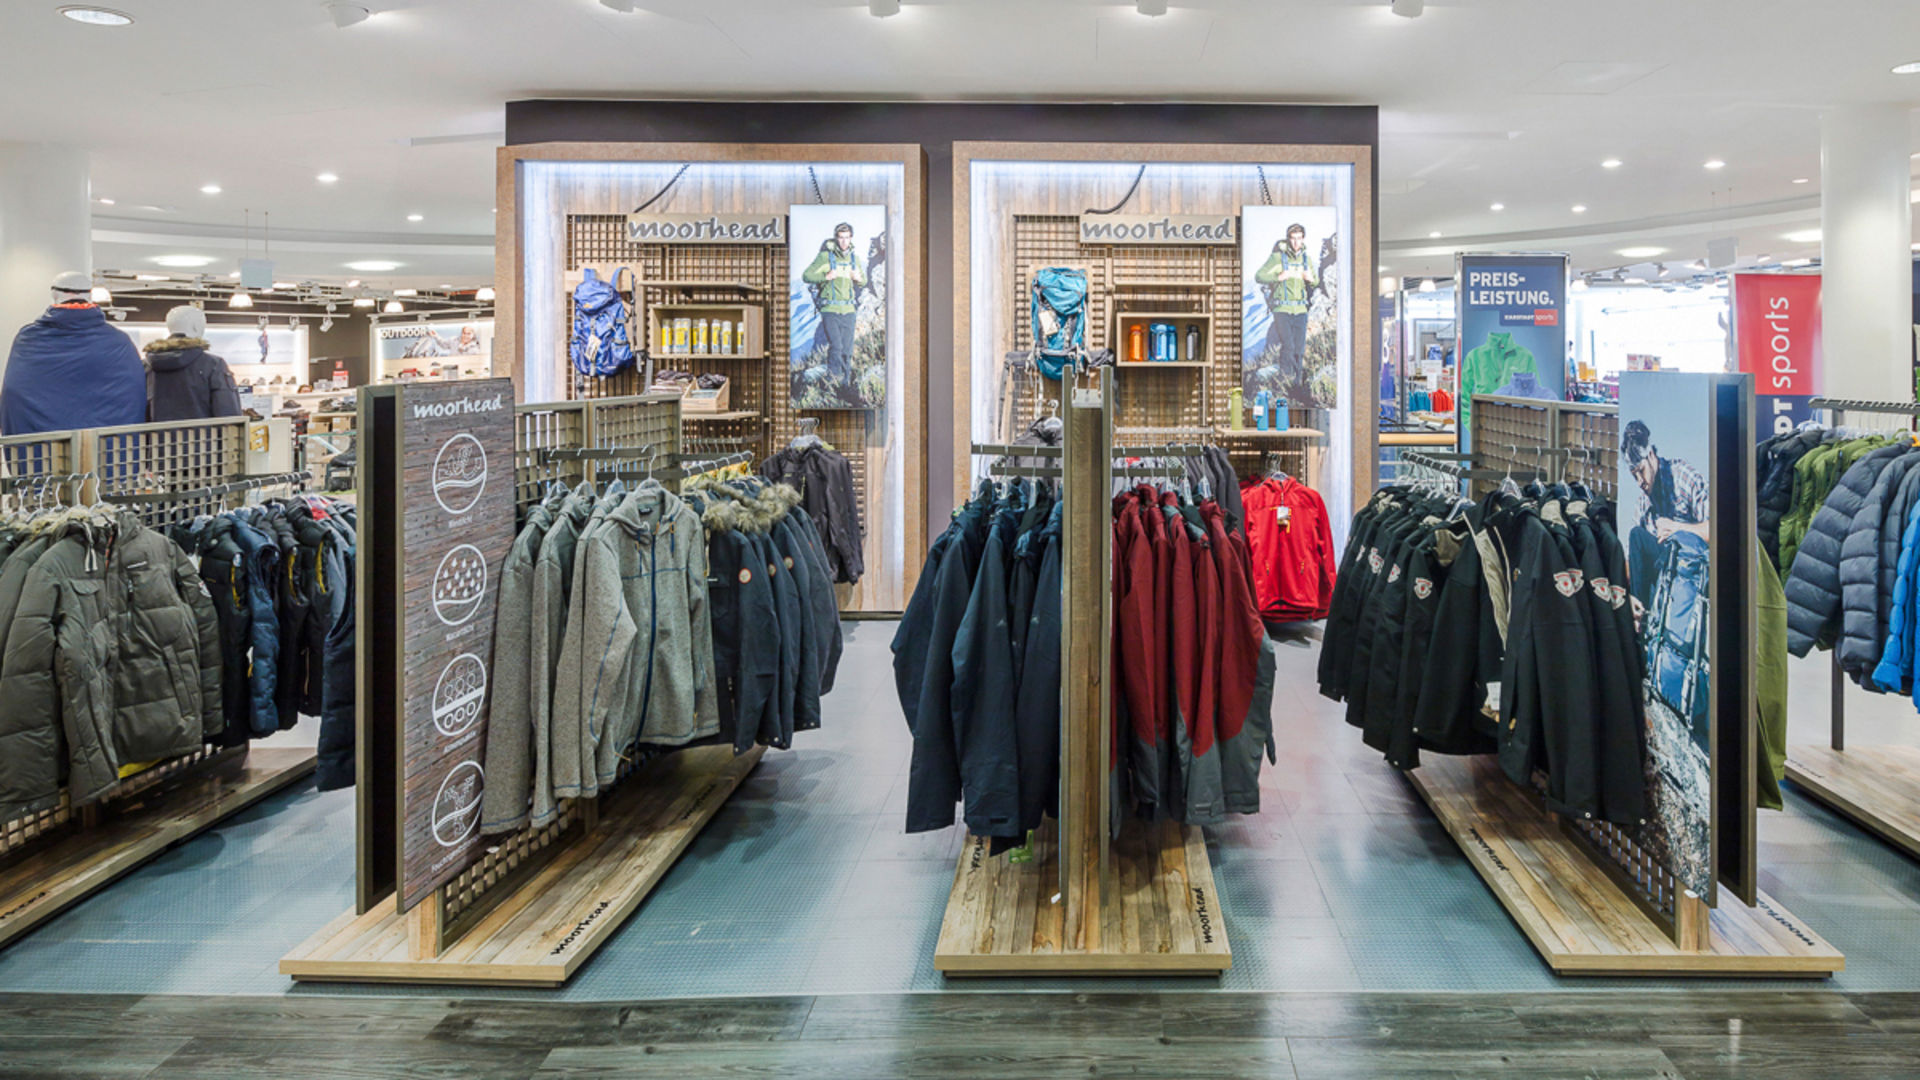 Karstadt Sports, Moorhead, Hamburg (Germany) (1)_web_reference